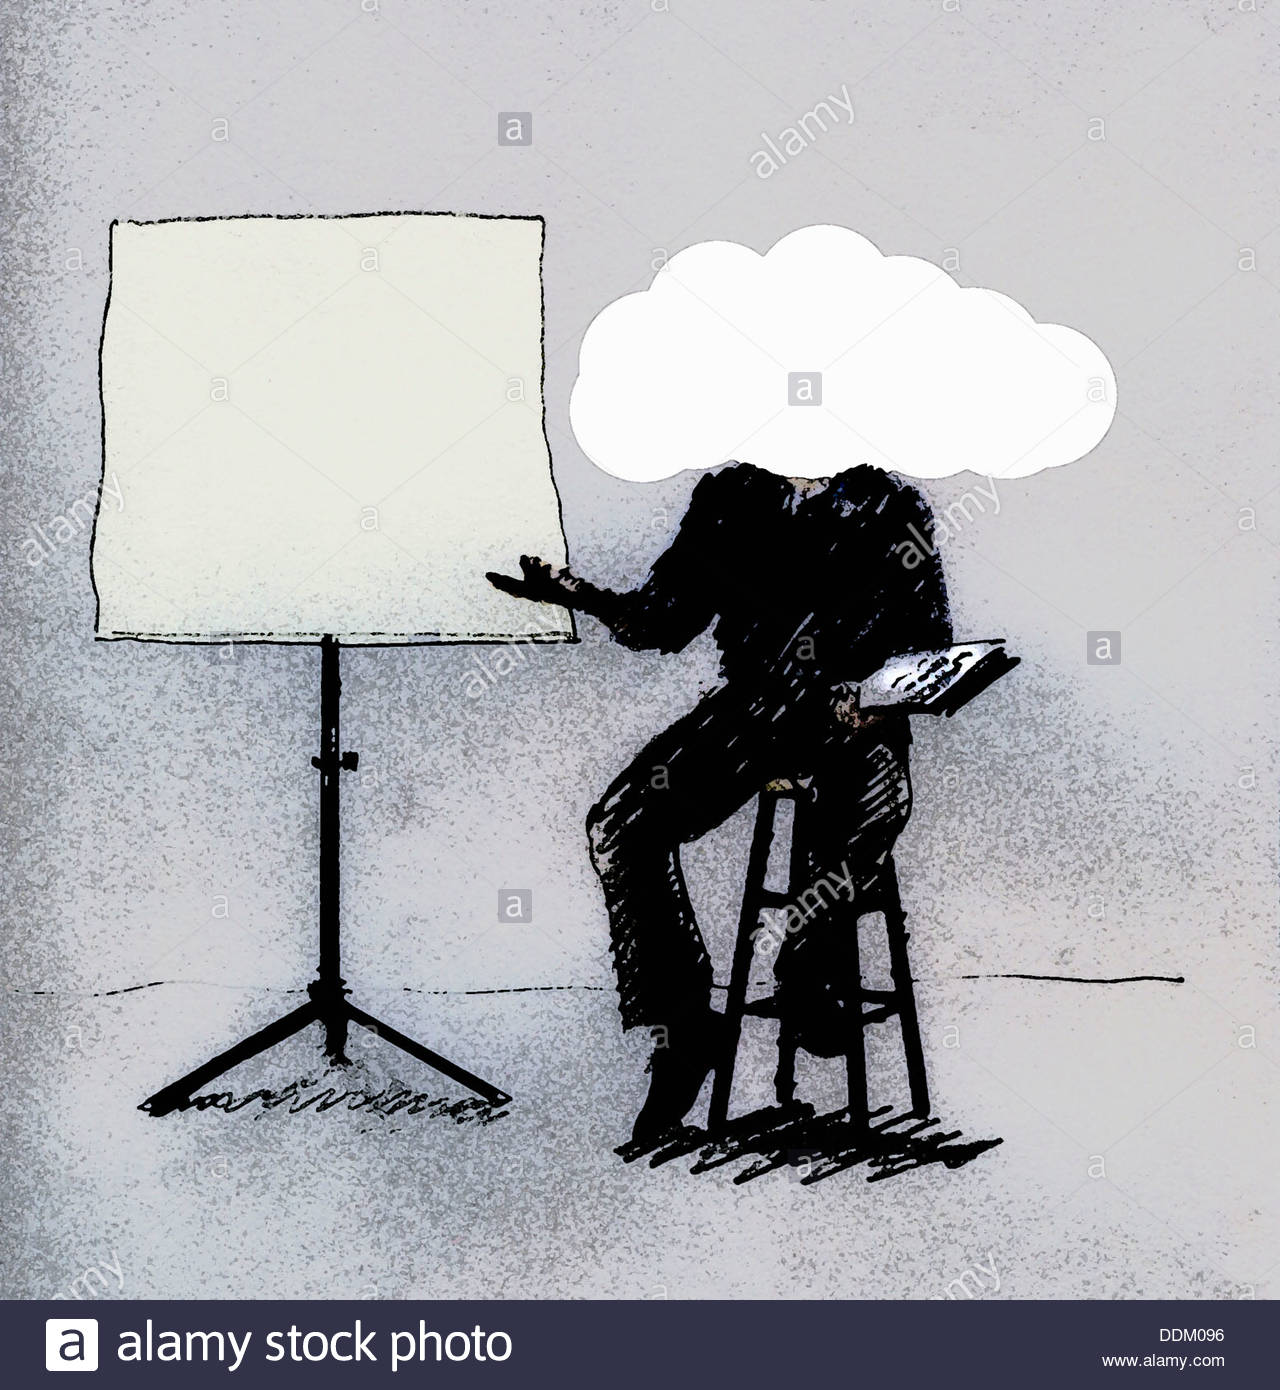 Man with head in cloud sitting beside blank projection screen - Stock Image